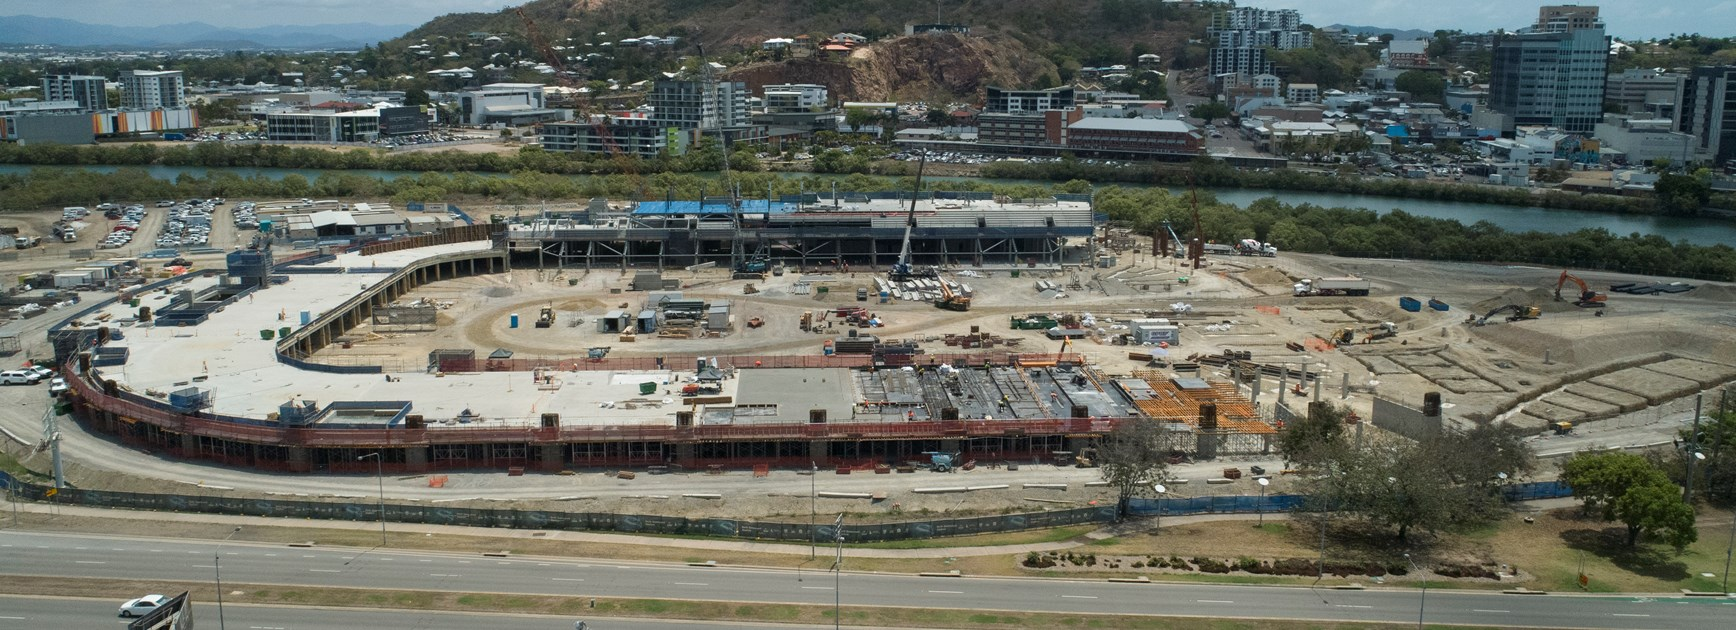 North Queensland Stadium project site looking west towards Castle Hill (image taken by drone 12 October 2018) © Queensland Department of Housing and Public Works